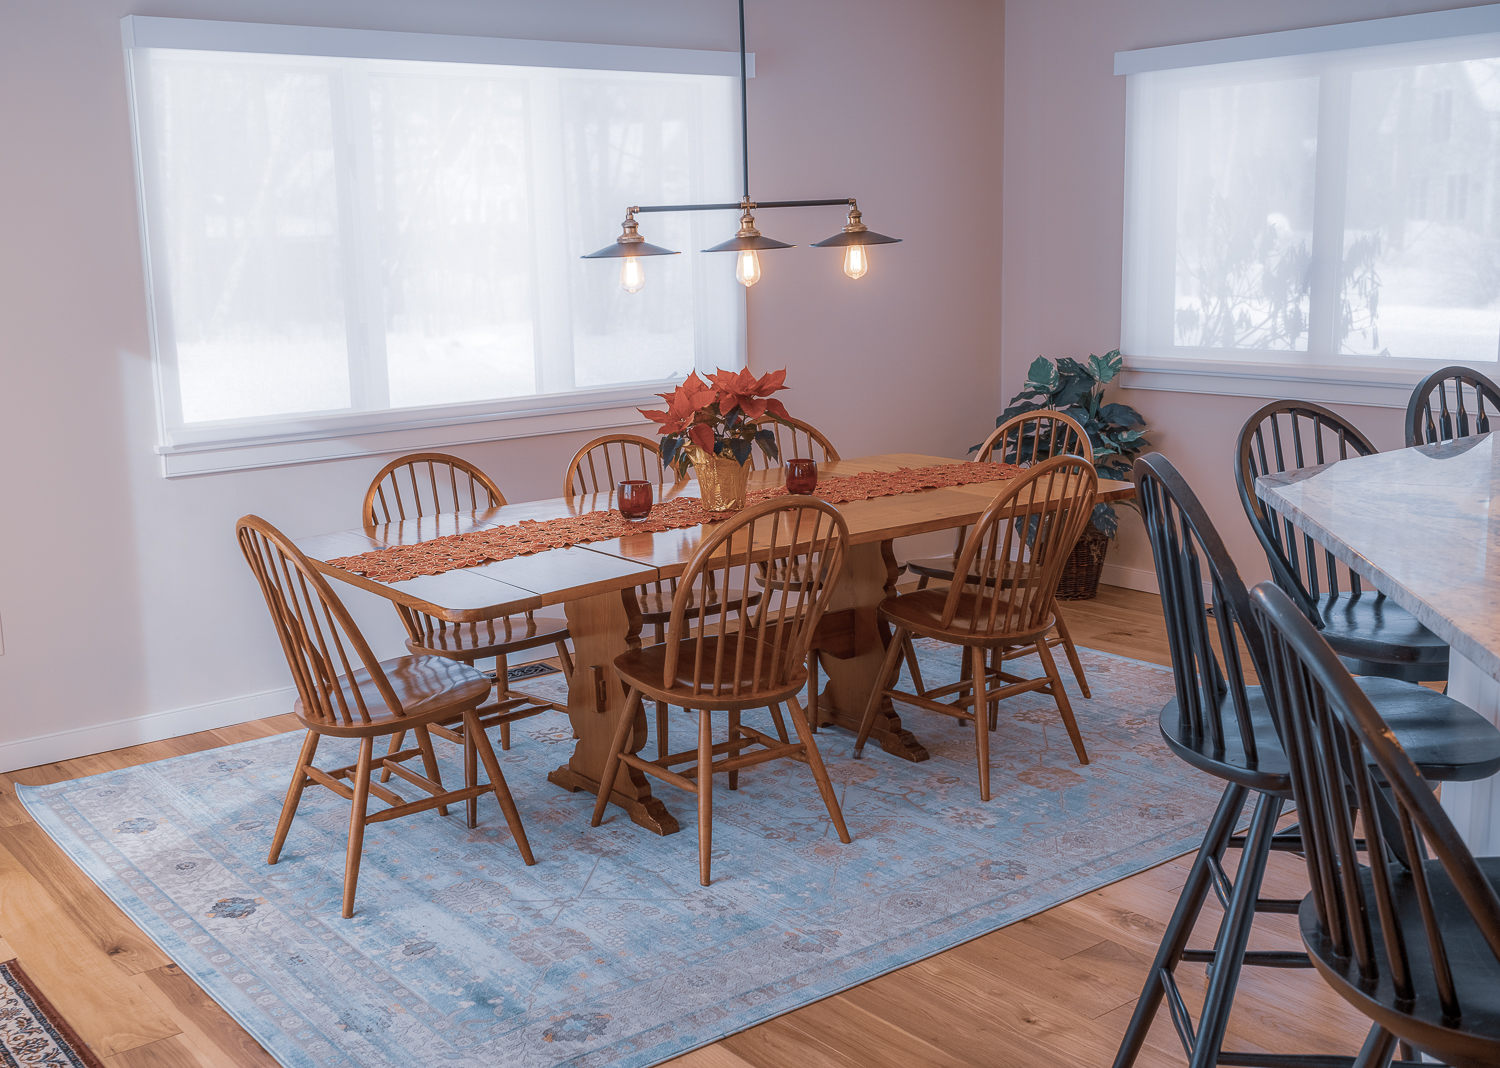 dining room table and chairs.jpg